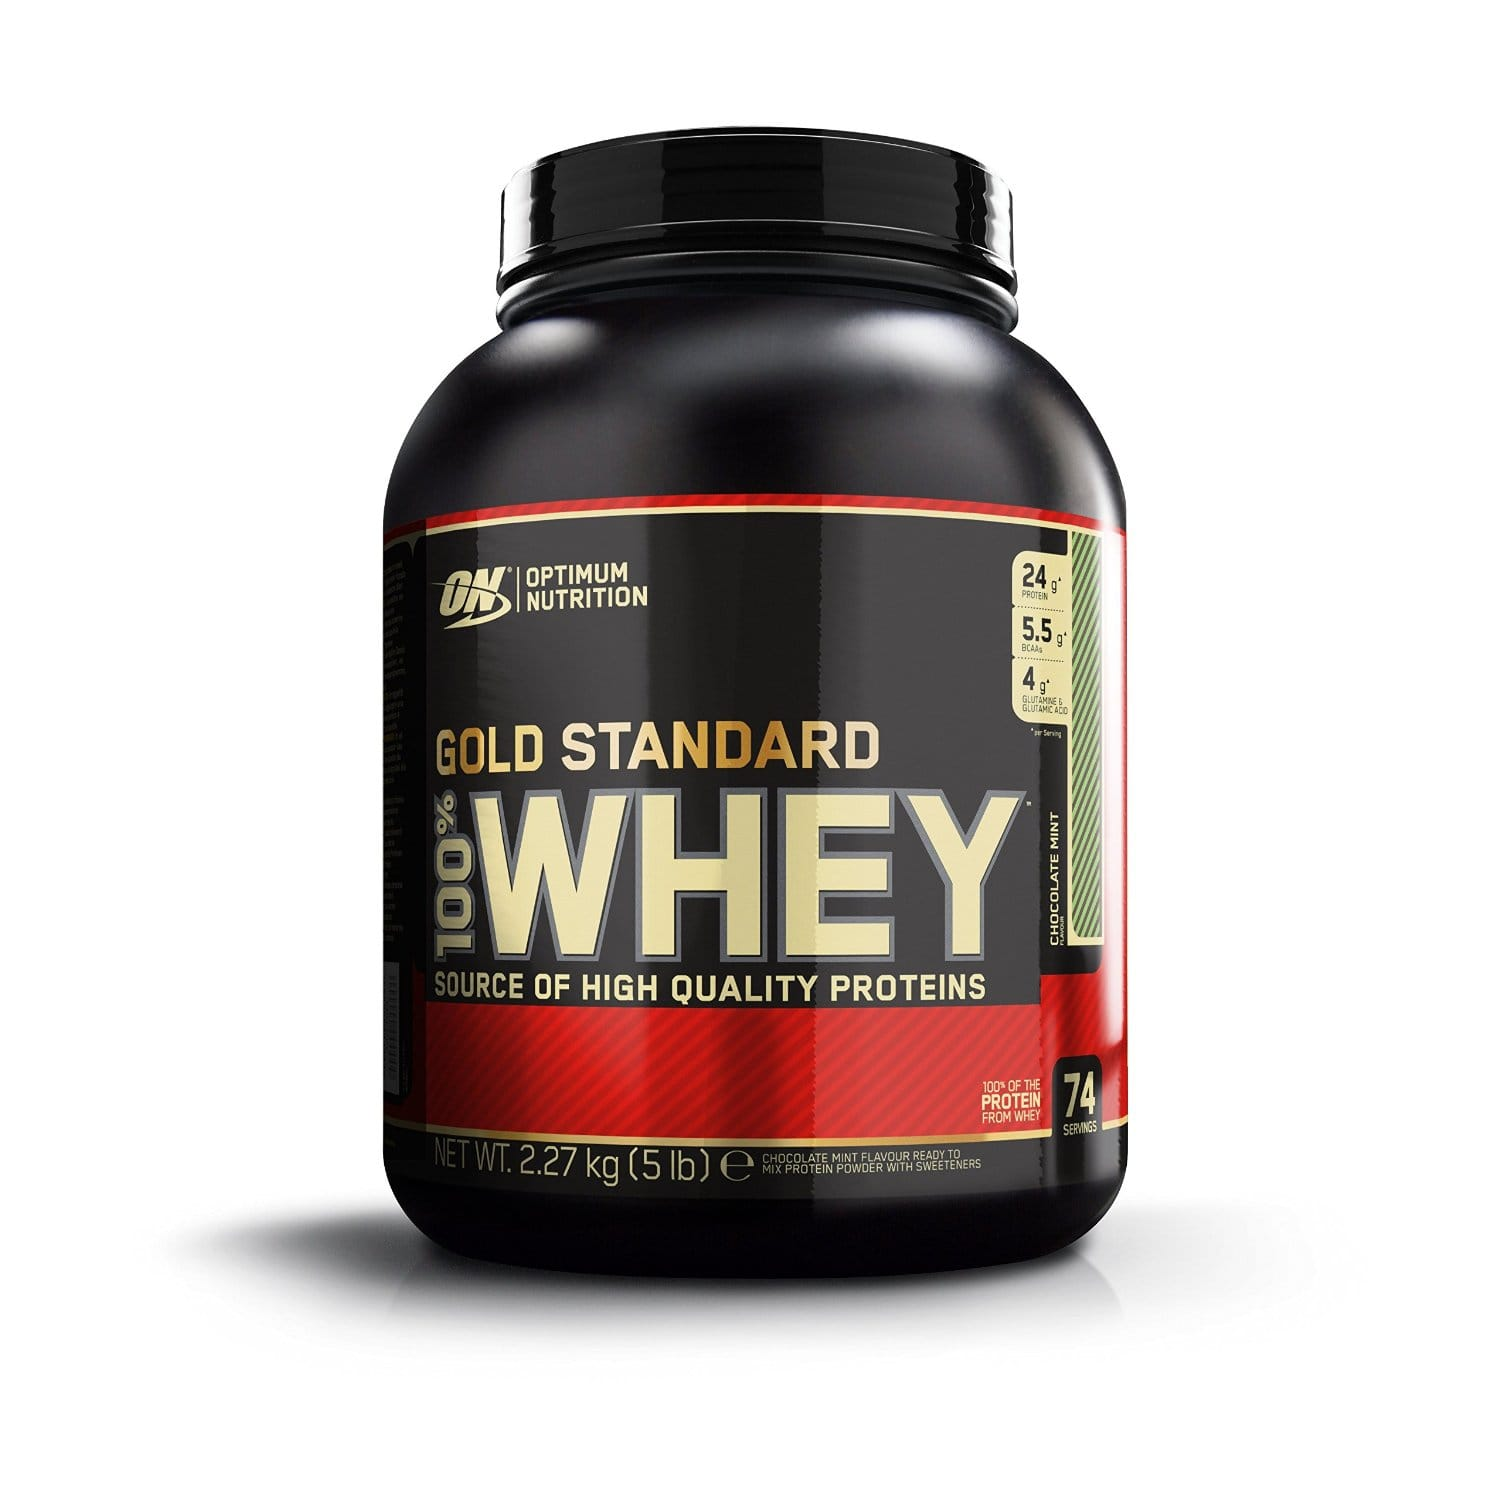 Optimum Nutrition Coupon: Whey Protein, Supplements & More  15% Off